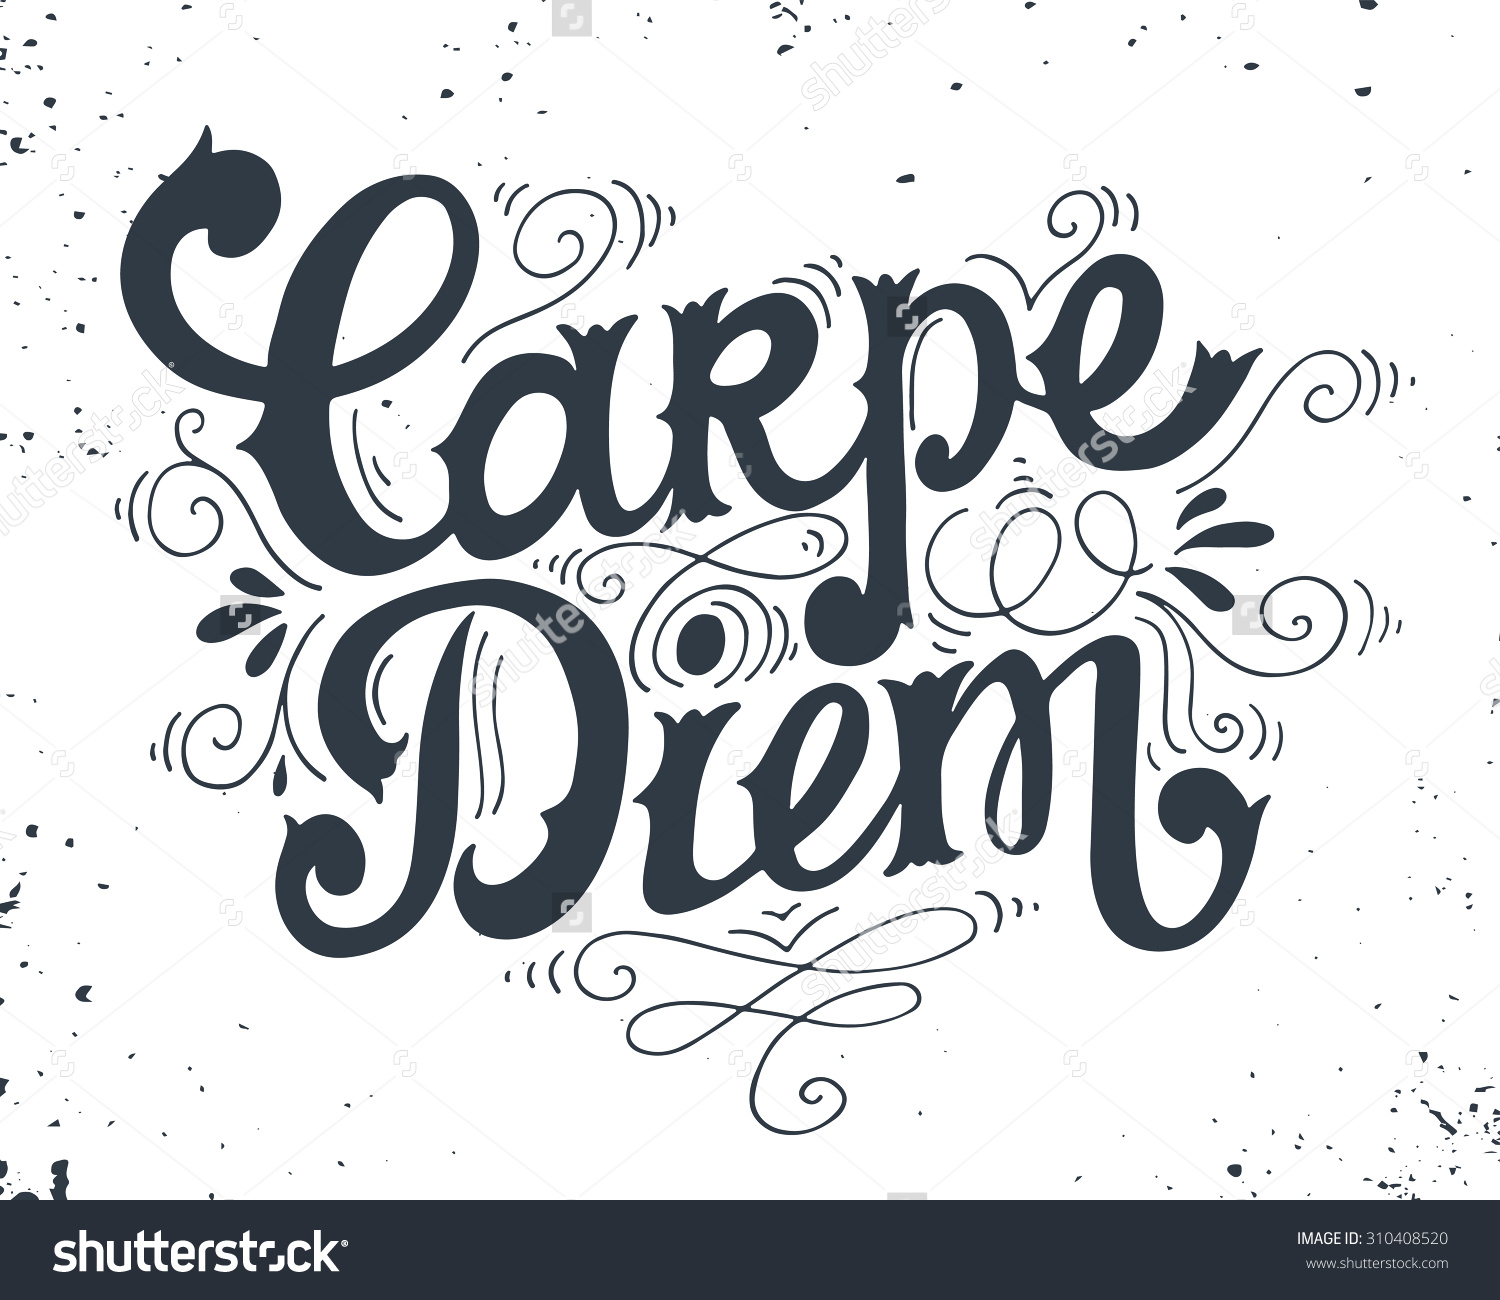 Seize the day clipart.